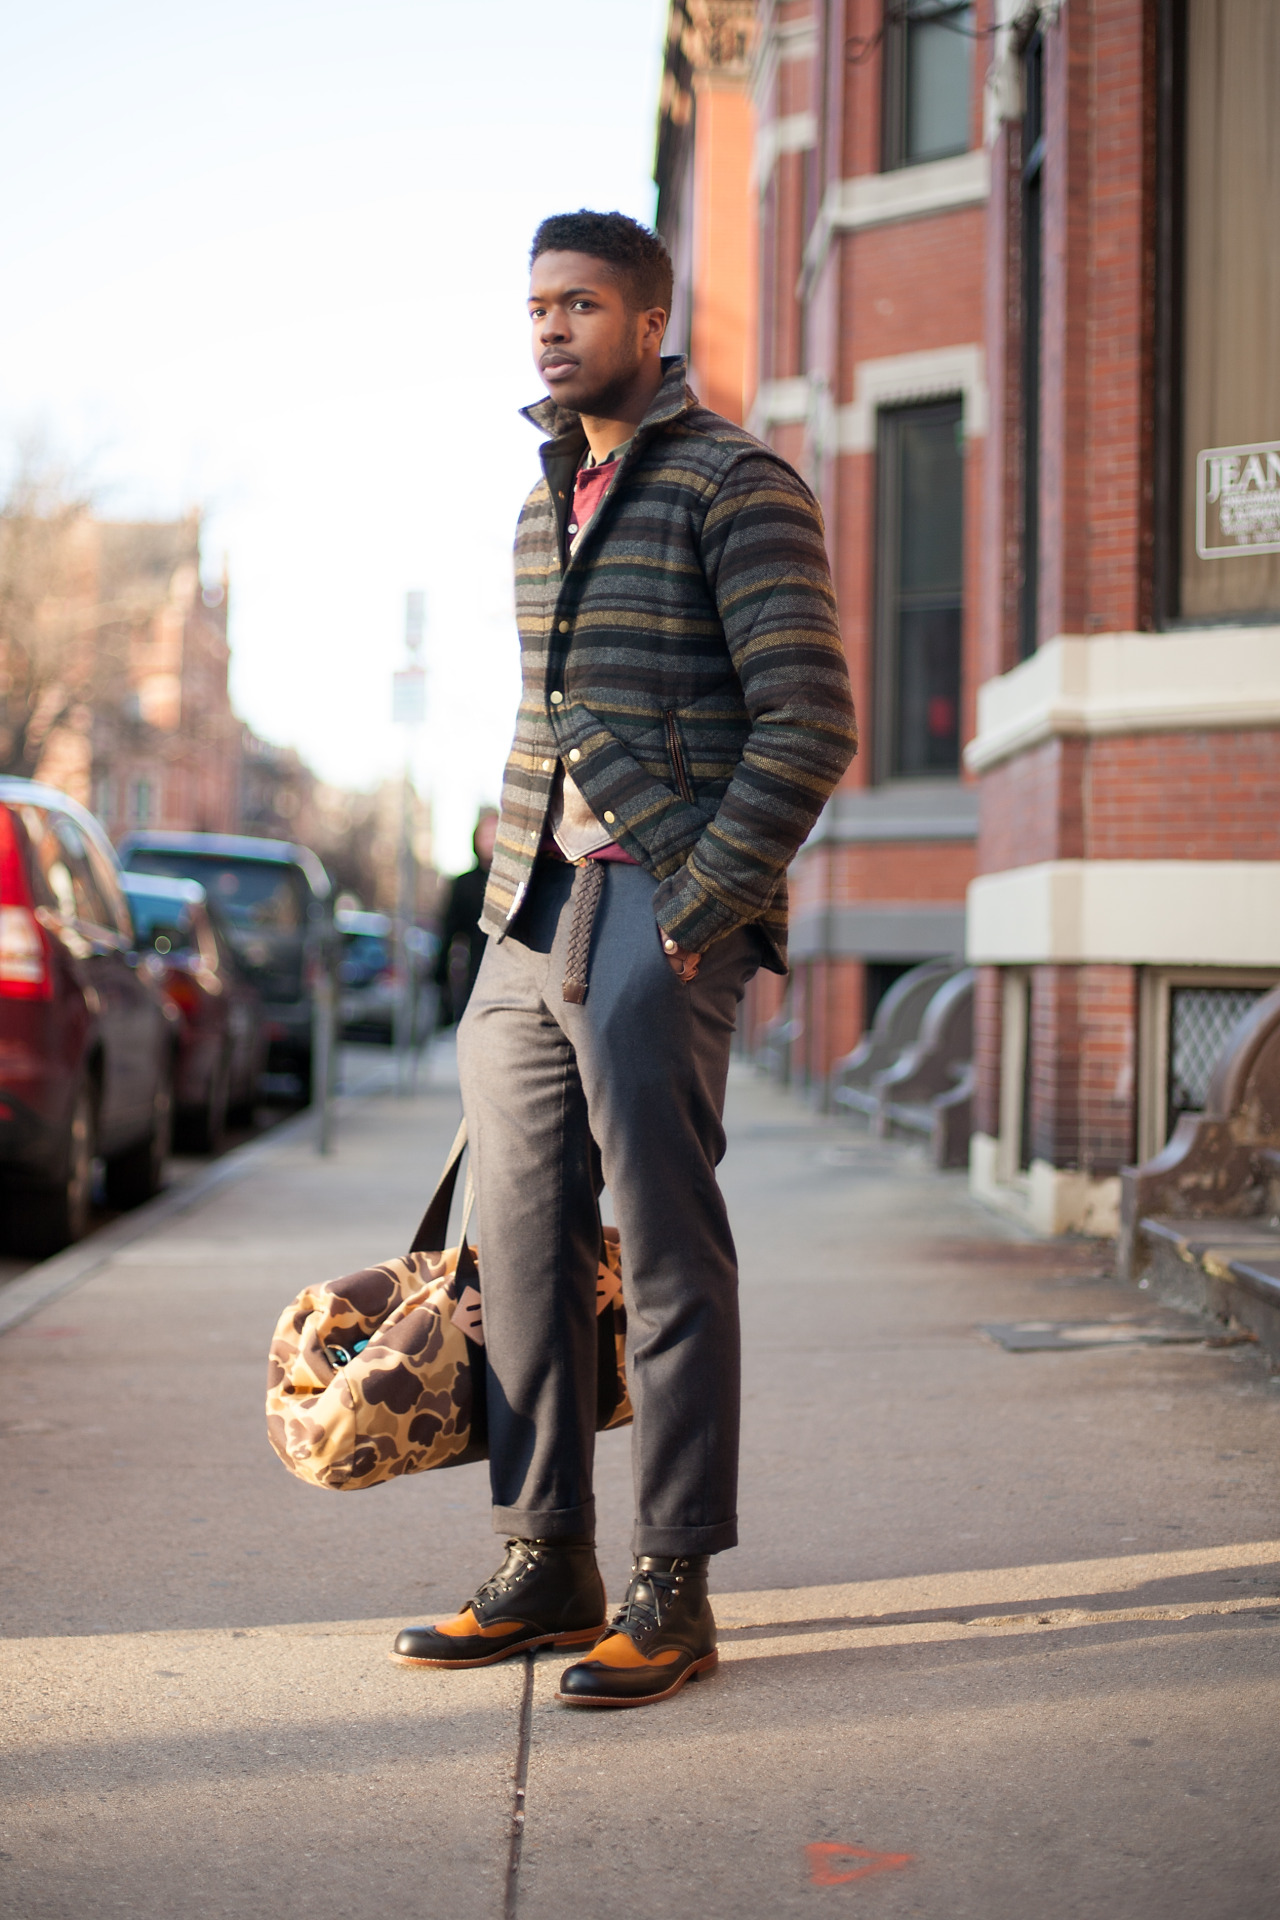 Self Described Style: Mixture of Urban & Gentleman'sFavorite Store in Boston: Bobby From BostonOccupation: Ball and Buck | BloggerSpotted at: Newbury St. I am always excited to see what Edem is wearing. His take on menswear is classic but also really fresh and never boring. We got a chance to work with him more closely when we shot the Ball and Buck store profile and I was happy to run into him on Newbury this afternoon for yet another super sharp look. I love the boots and the bag together. And that jacket adds such great color and texture and is paired so beautifully with his gray pants.